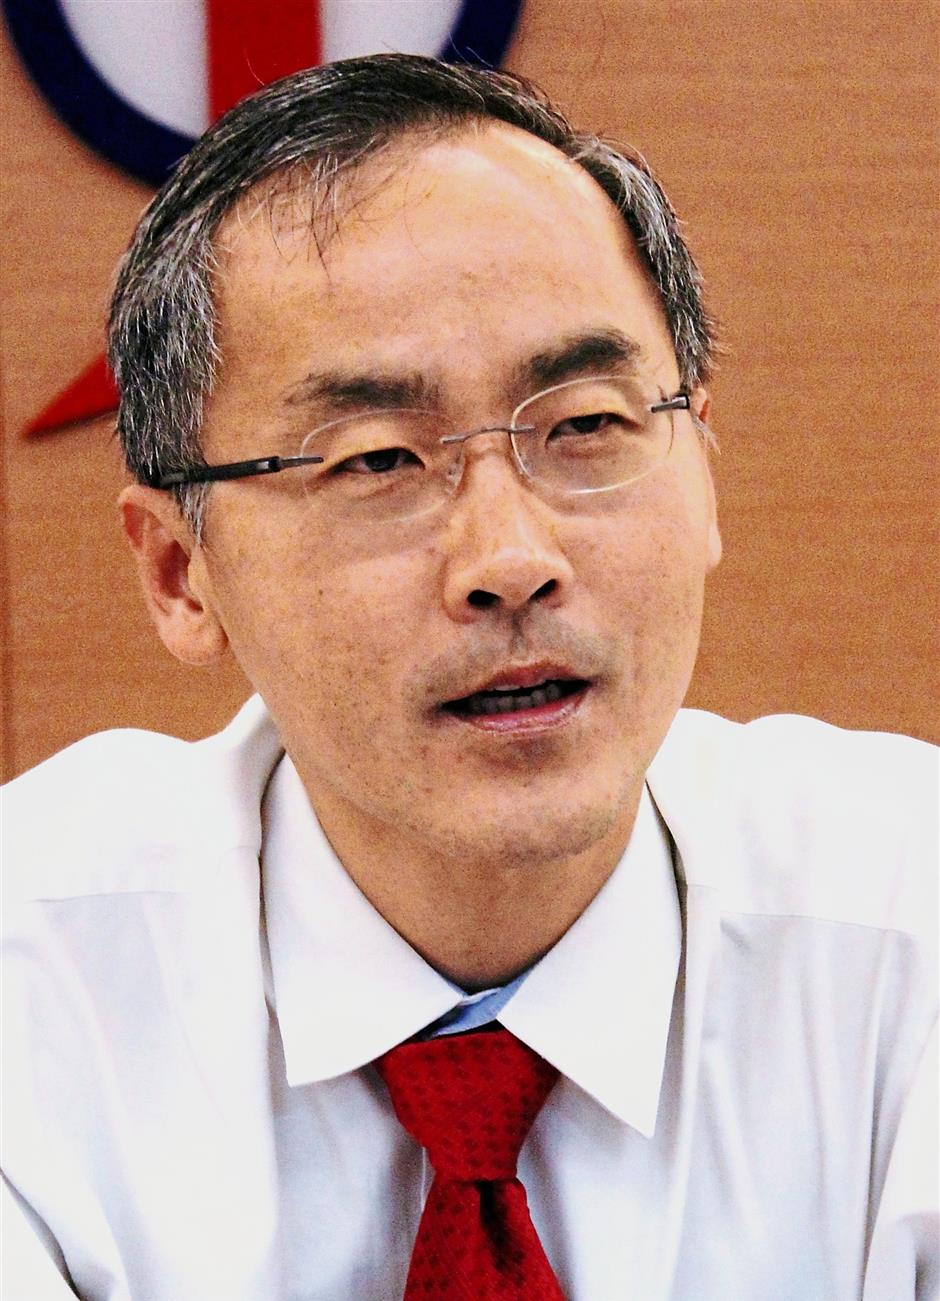 Dr Ko said one of his main goals is to ensure Kampar gets a new hospital to replace the current one situated on a steep hill.